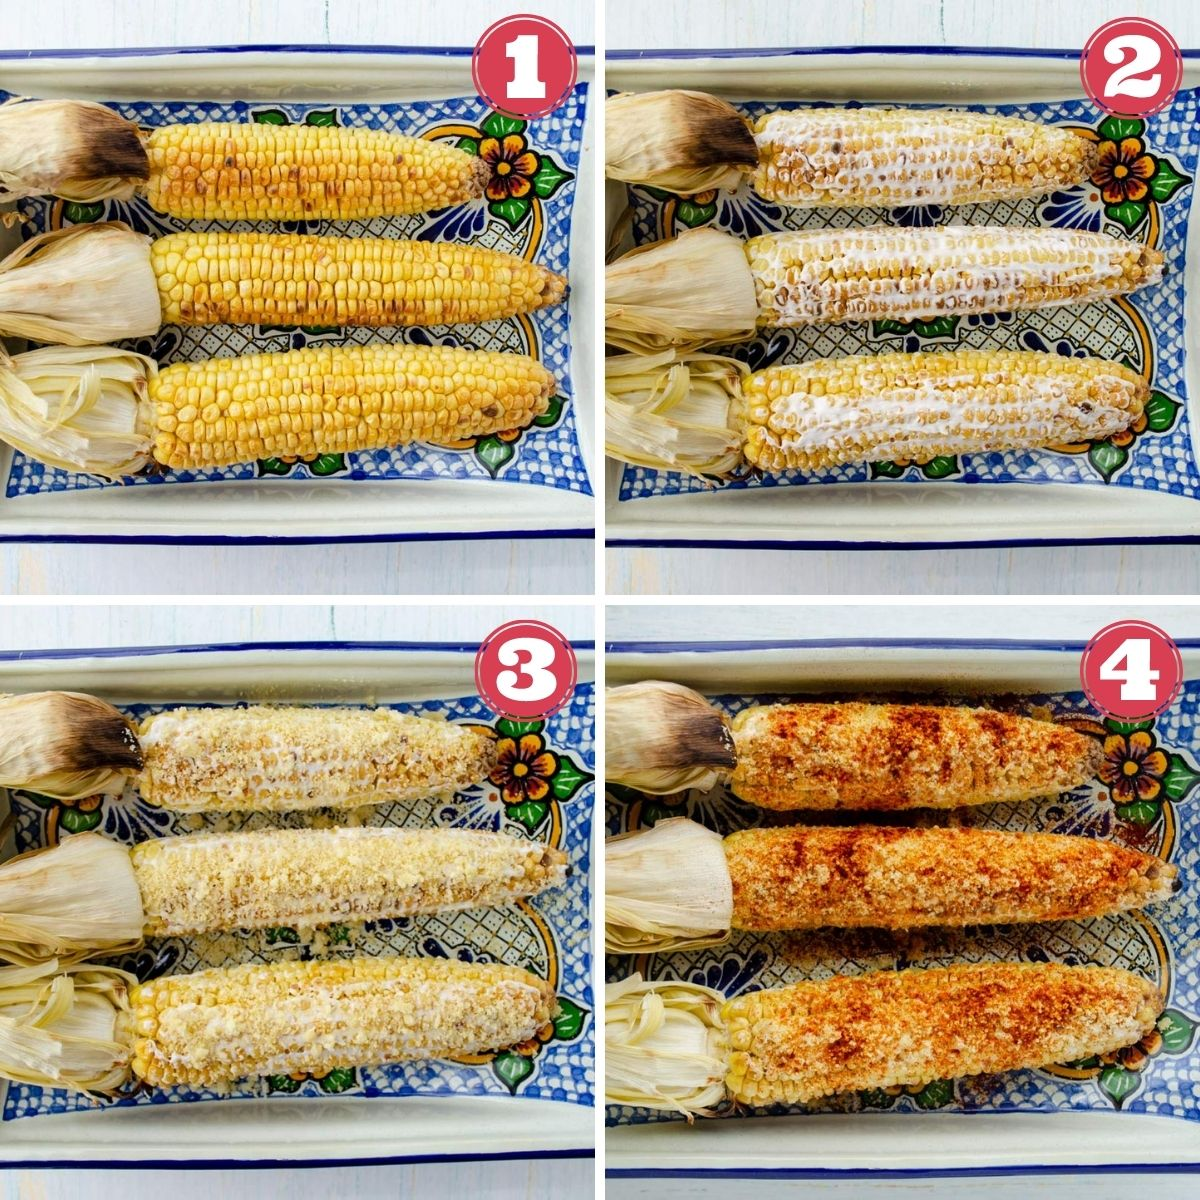 from left to right 3 cobs of corn, 3 cobs of corn with mayo, 3 cobs of corn with queso fresco, three cobs of corn with chile powder